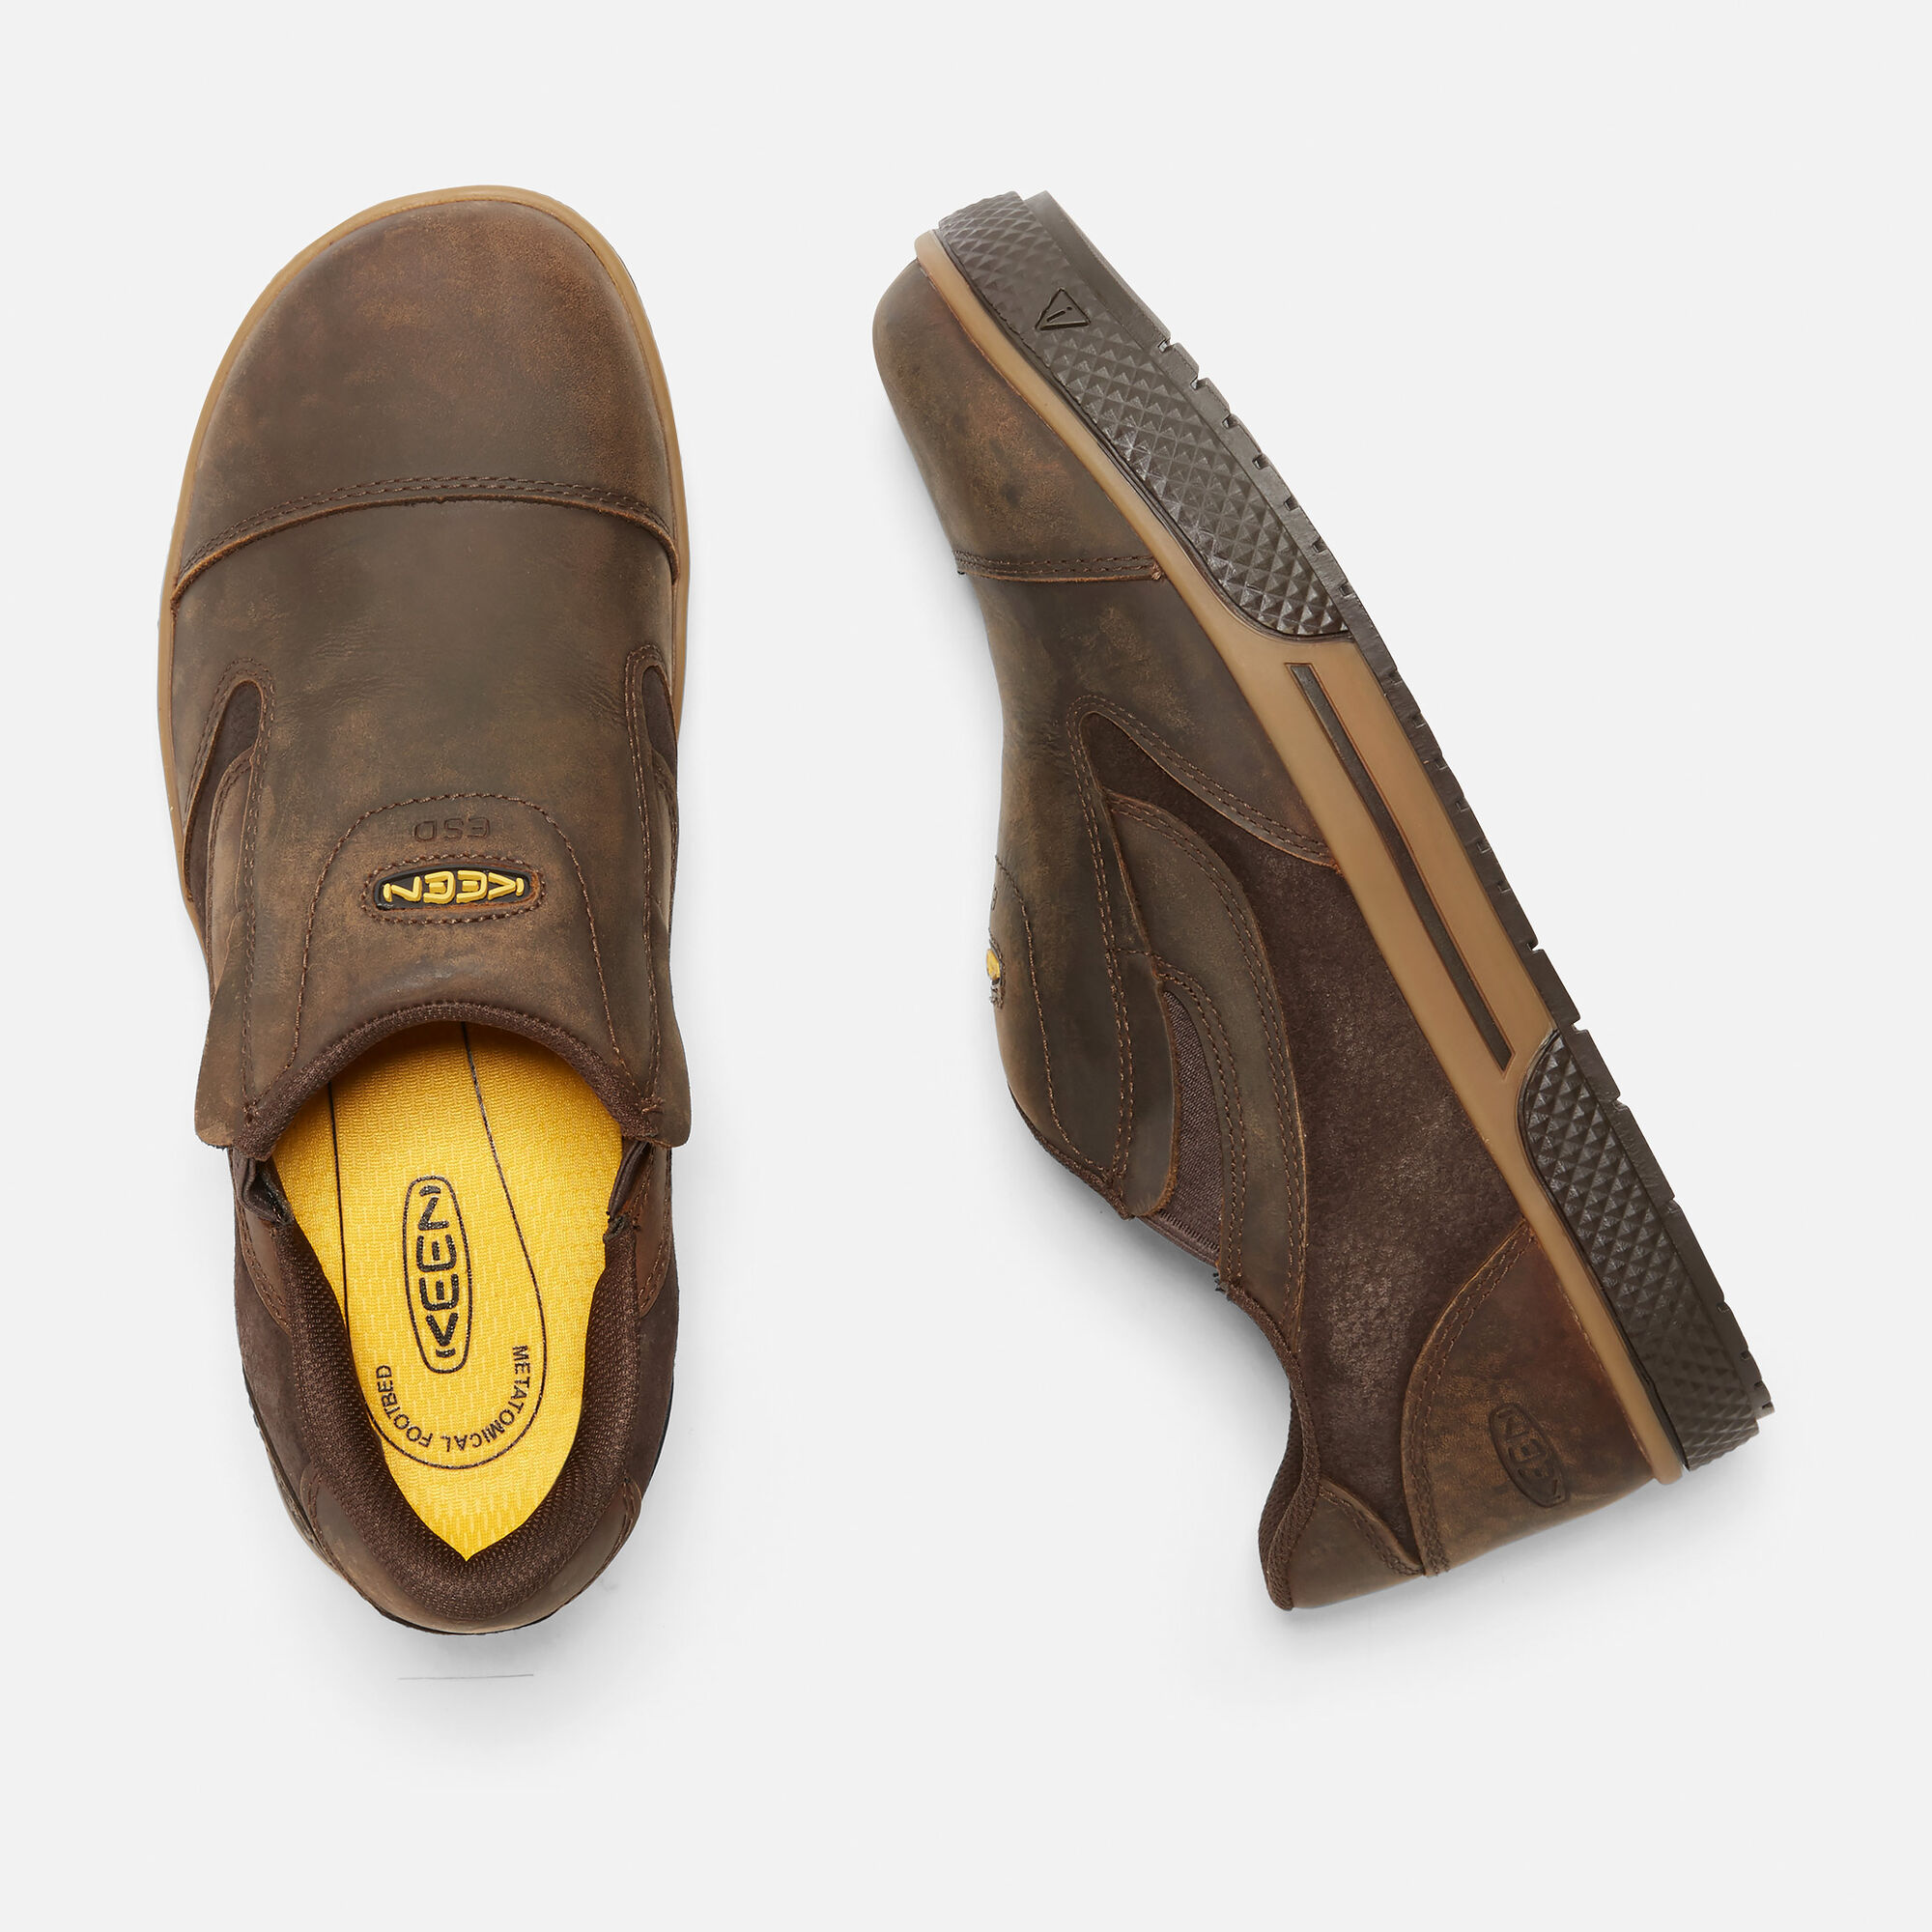 the walking best concrete com livestrong all work day on for article shoes floors